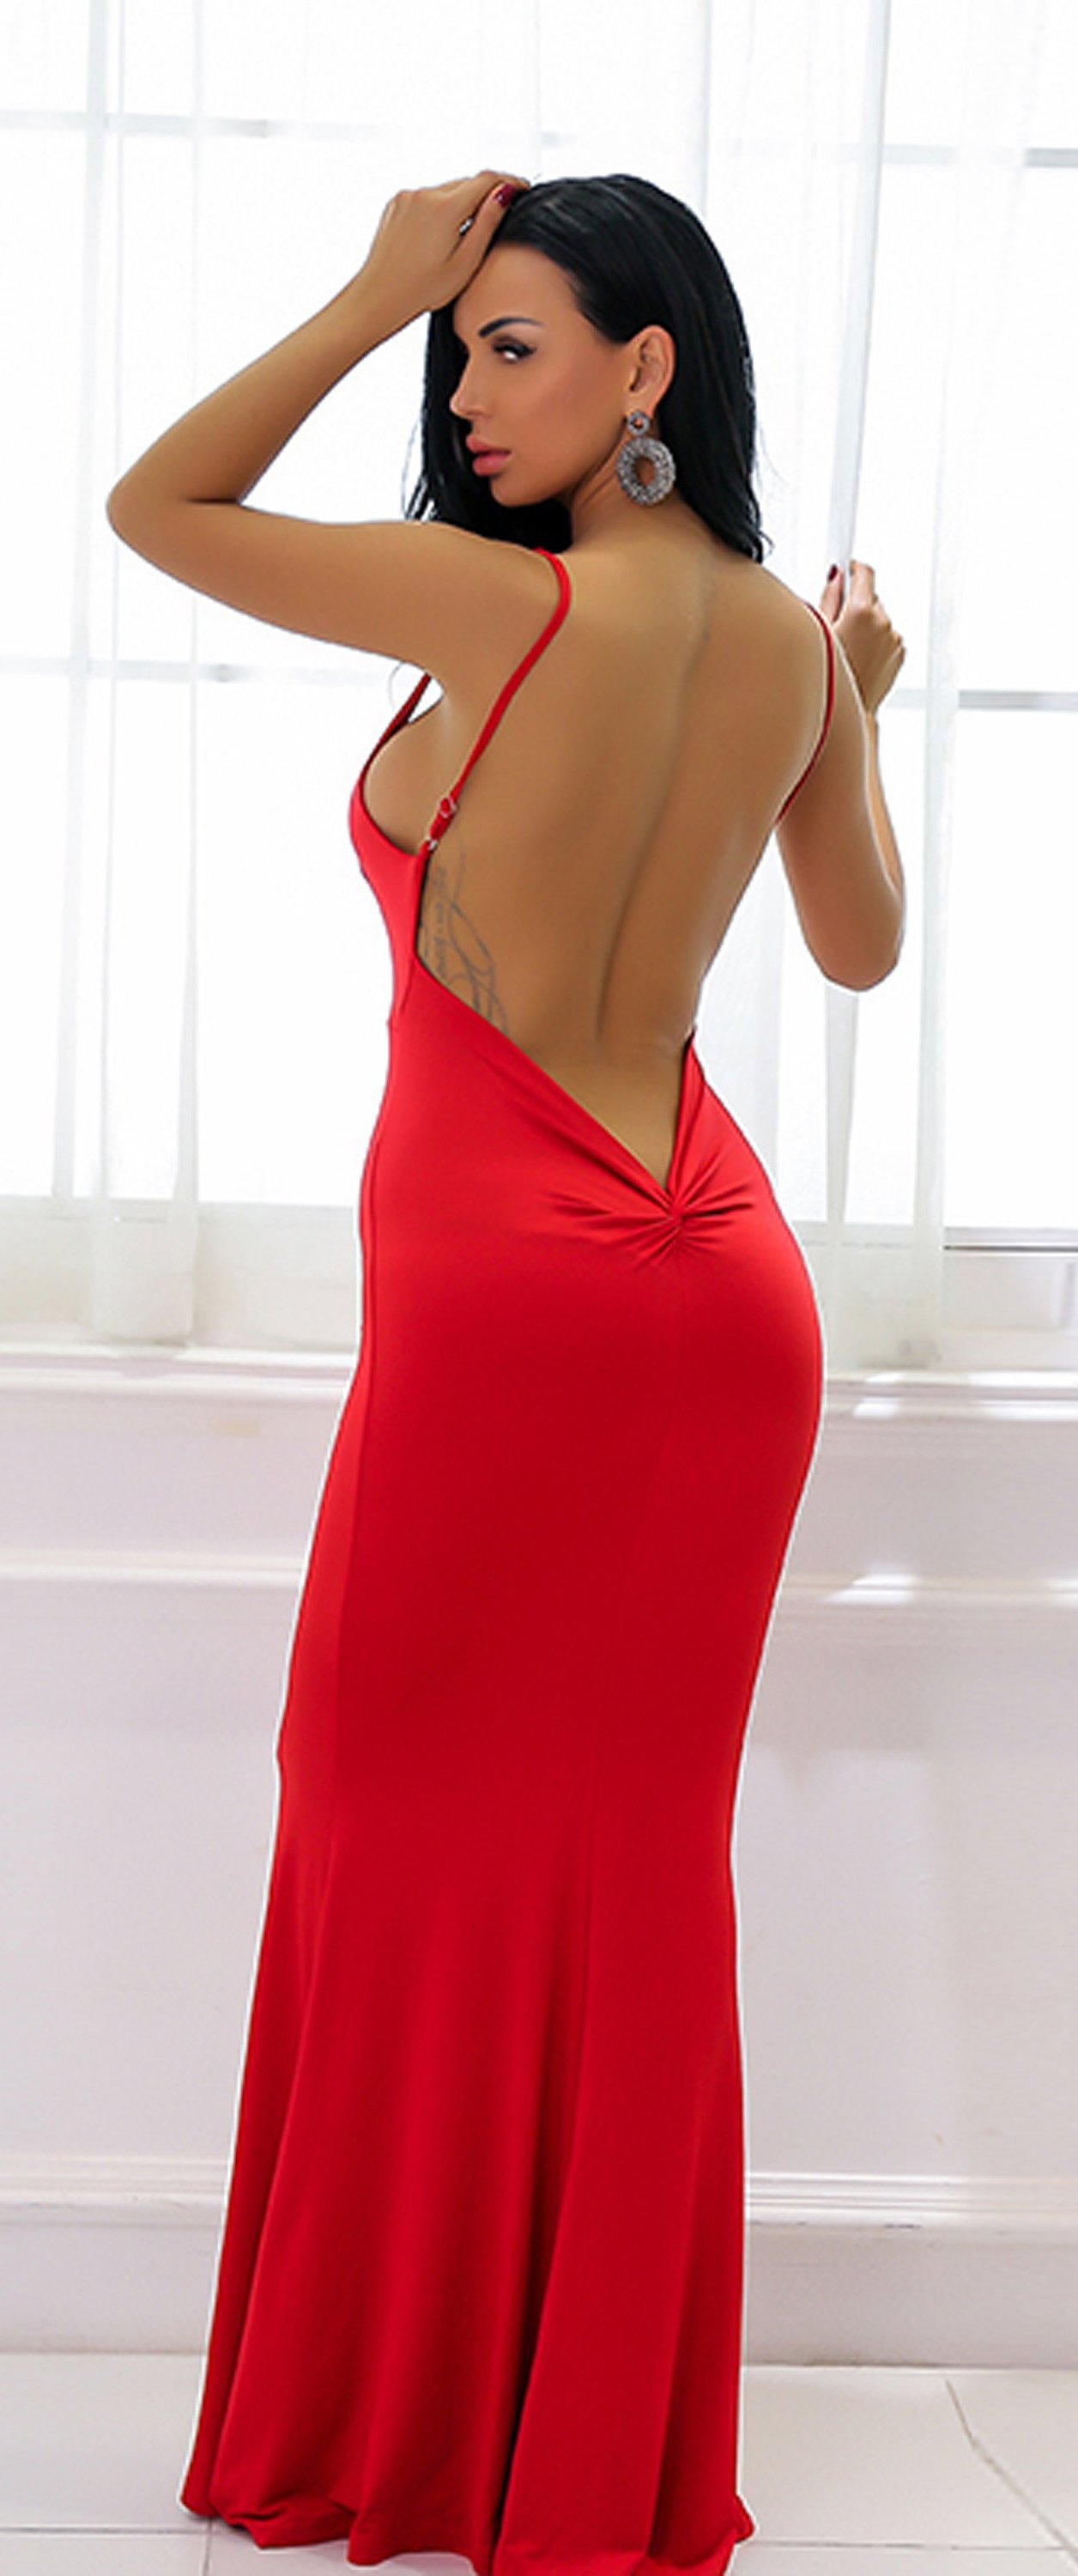 ba7695da3e Hot Red Tight Long Prom Dresses - Low Cut Ruched Backless Deep V Neck  Plunge Mermaid Gown Simple Maxi Dress for Graduation Homecoming Cocktail  Evening Party ...